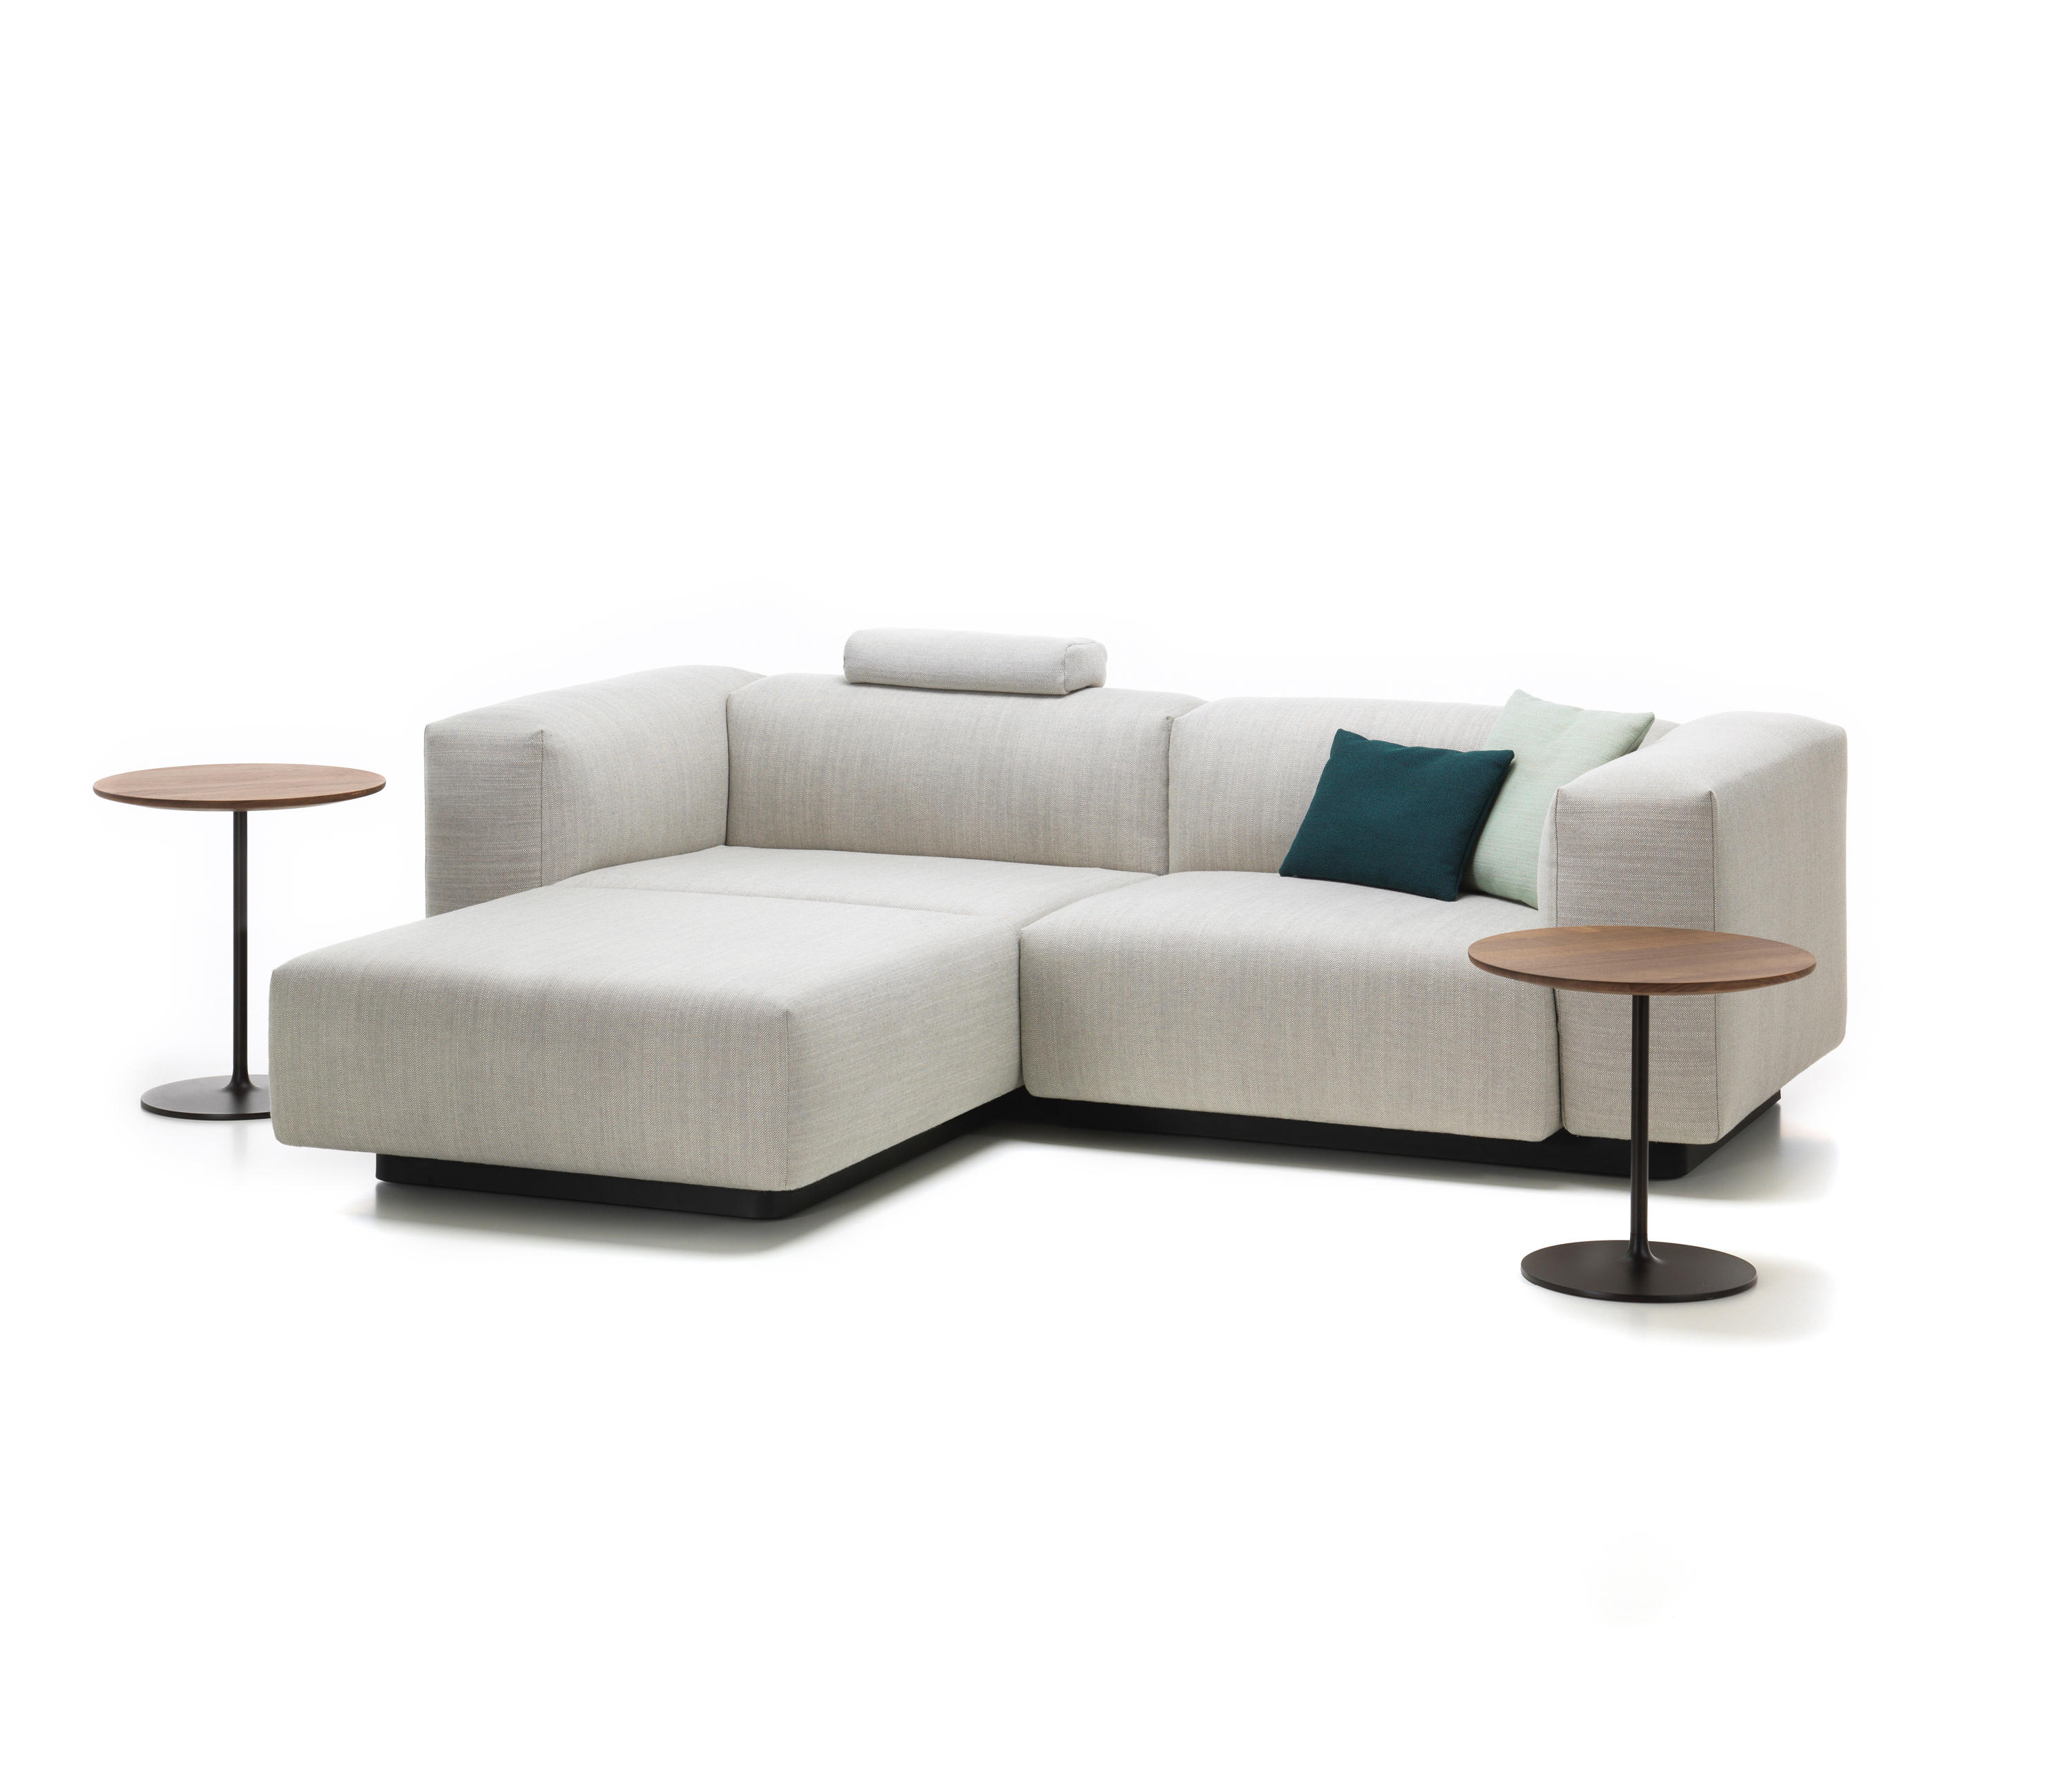 Soft Modular Sofa 2 Seater, Chaise Longue By Vitra | Sofas